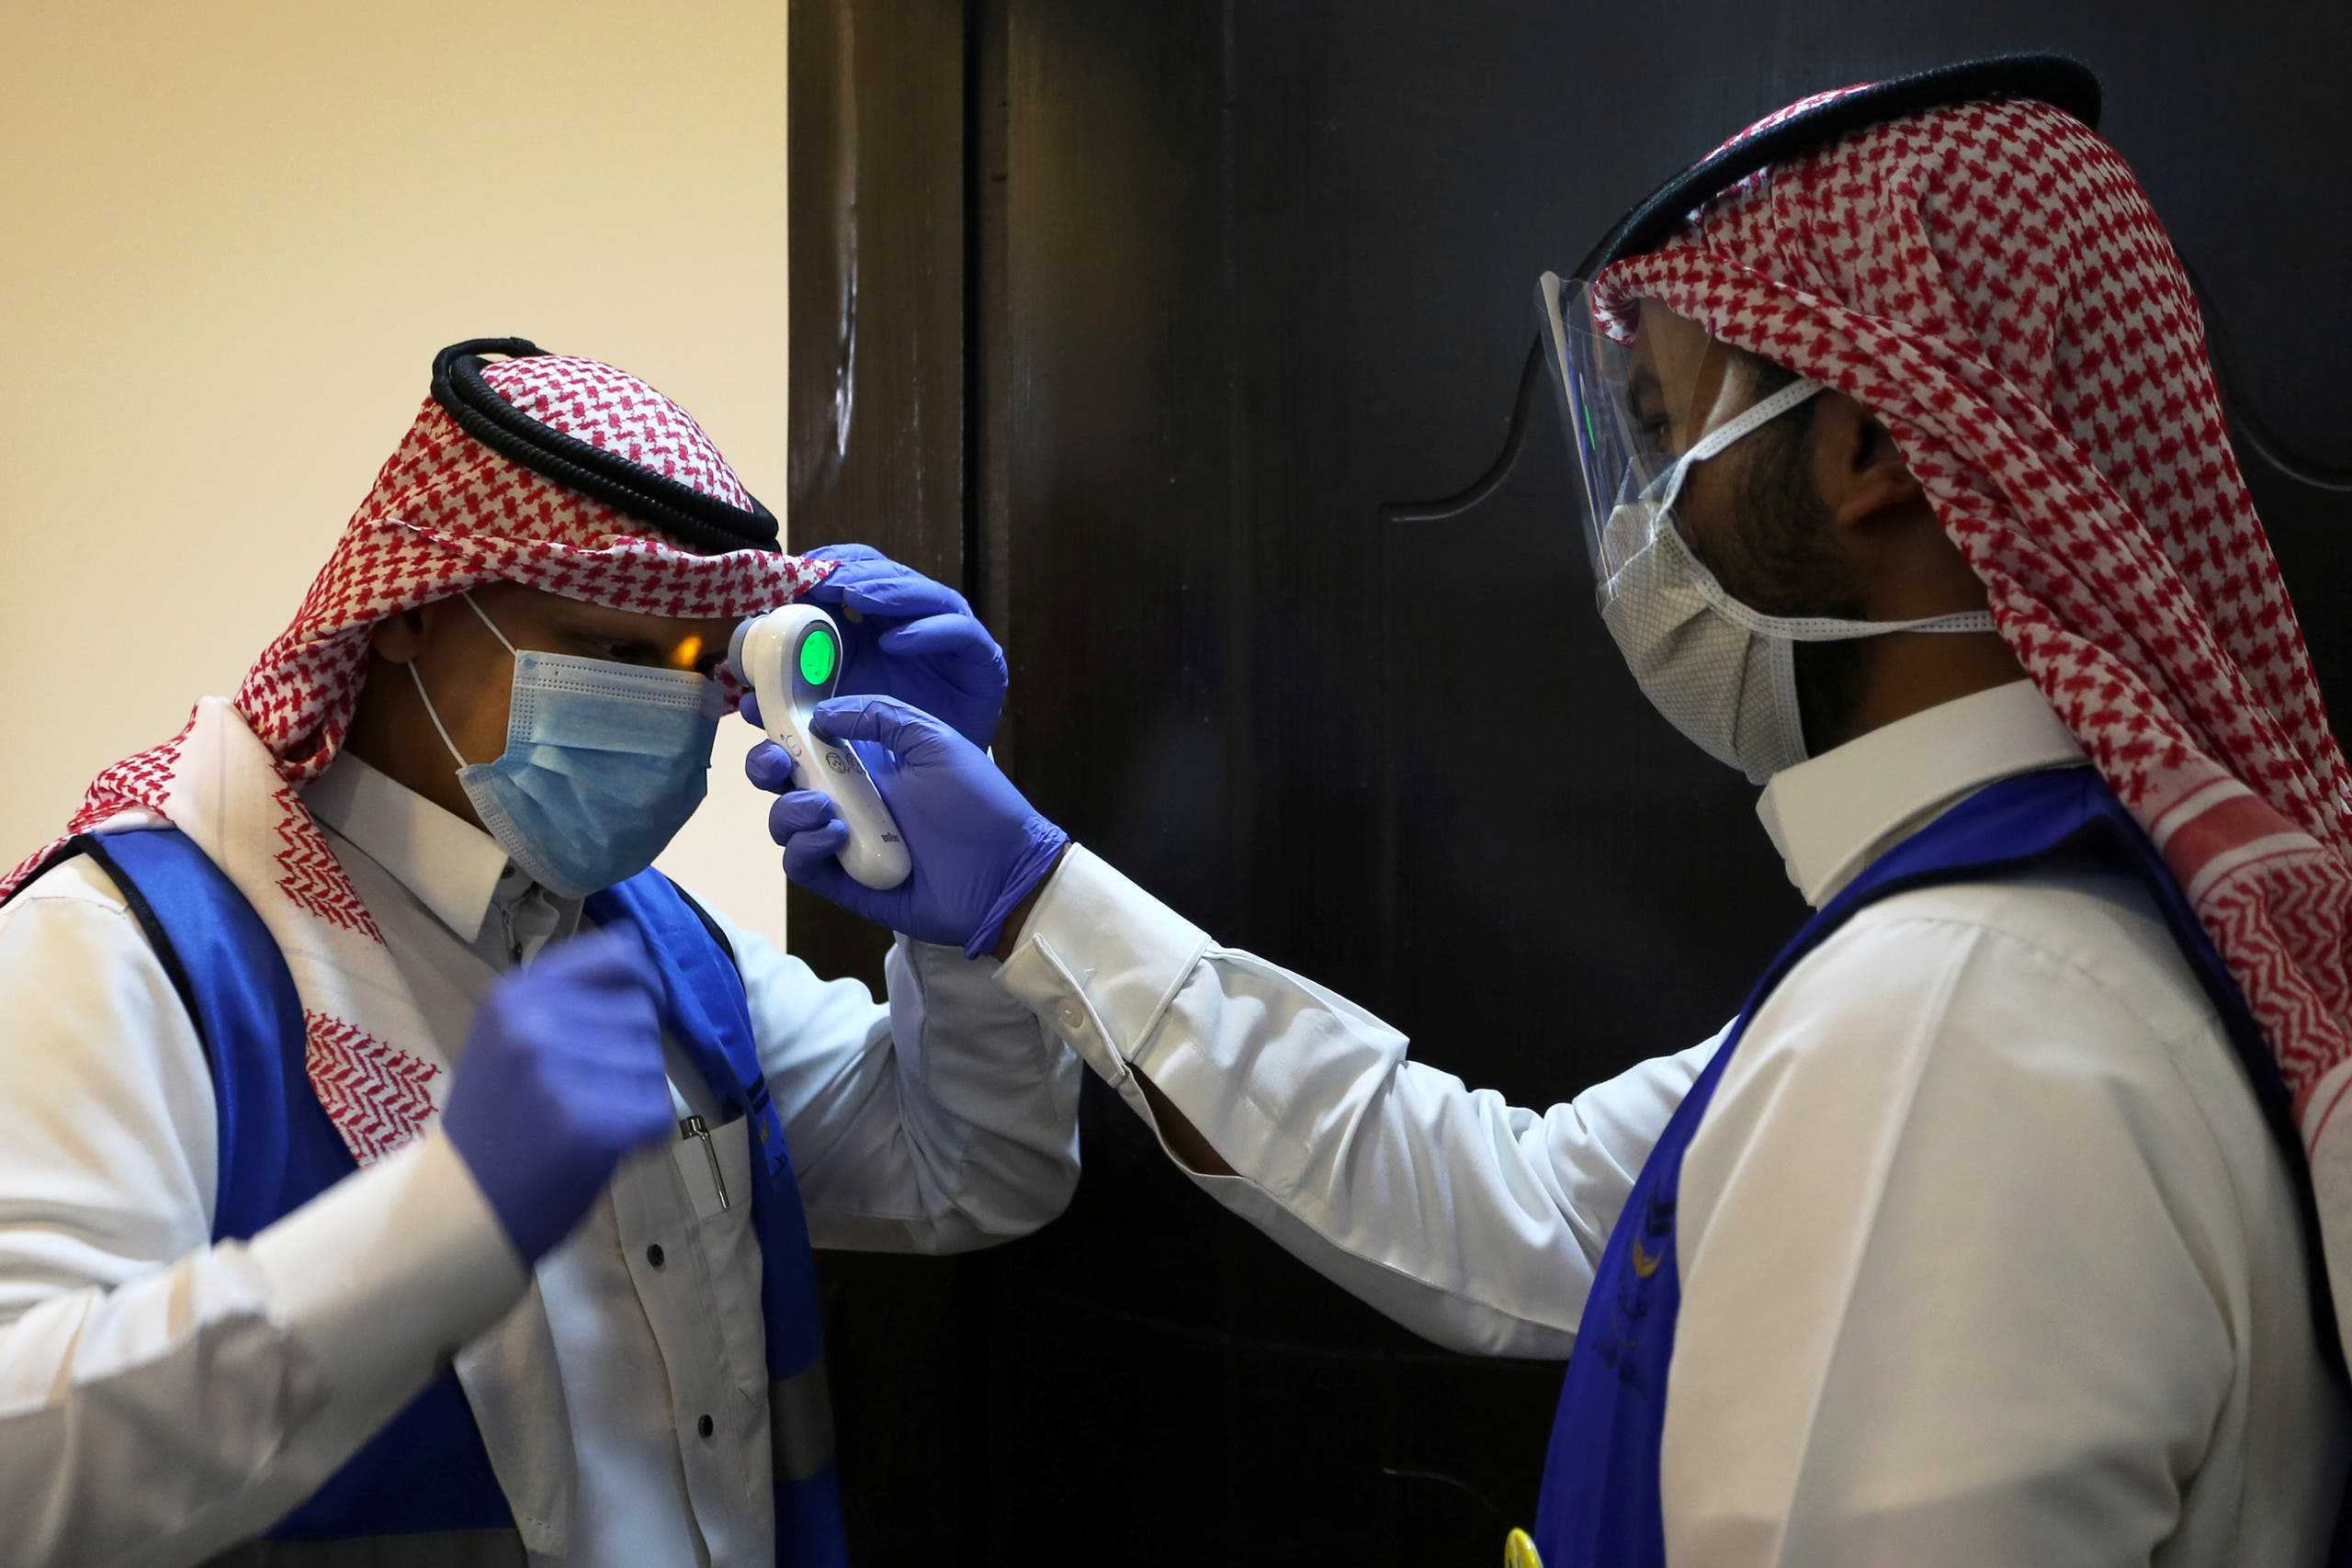 A Saudi volunteer supervisor checks the temperature of another volunteer following the outbreak of the coronavirus in Riyadh, Saudi Arabia, May 10, 2020. (Reuters)